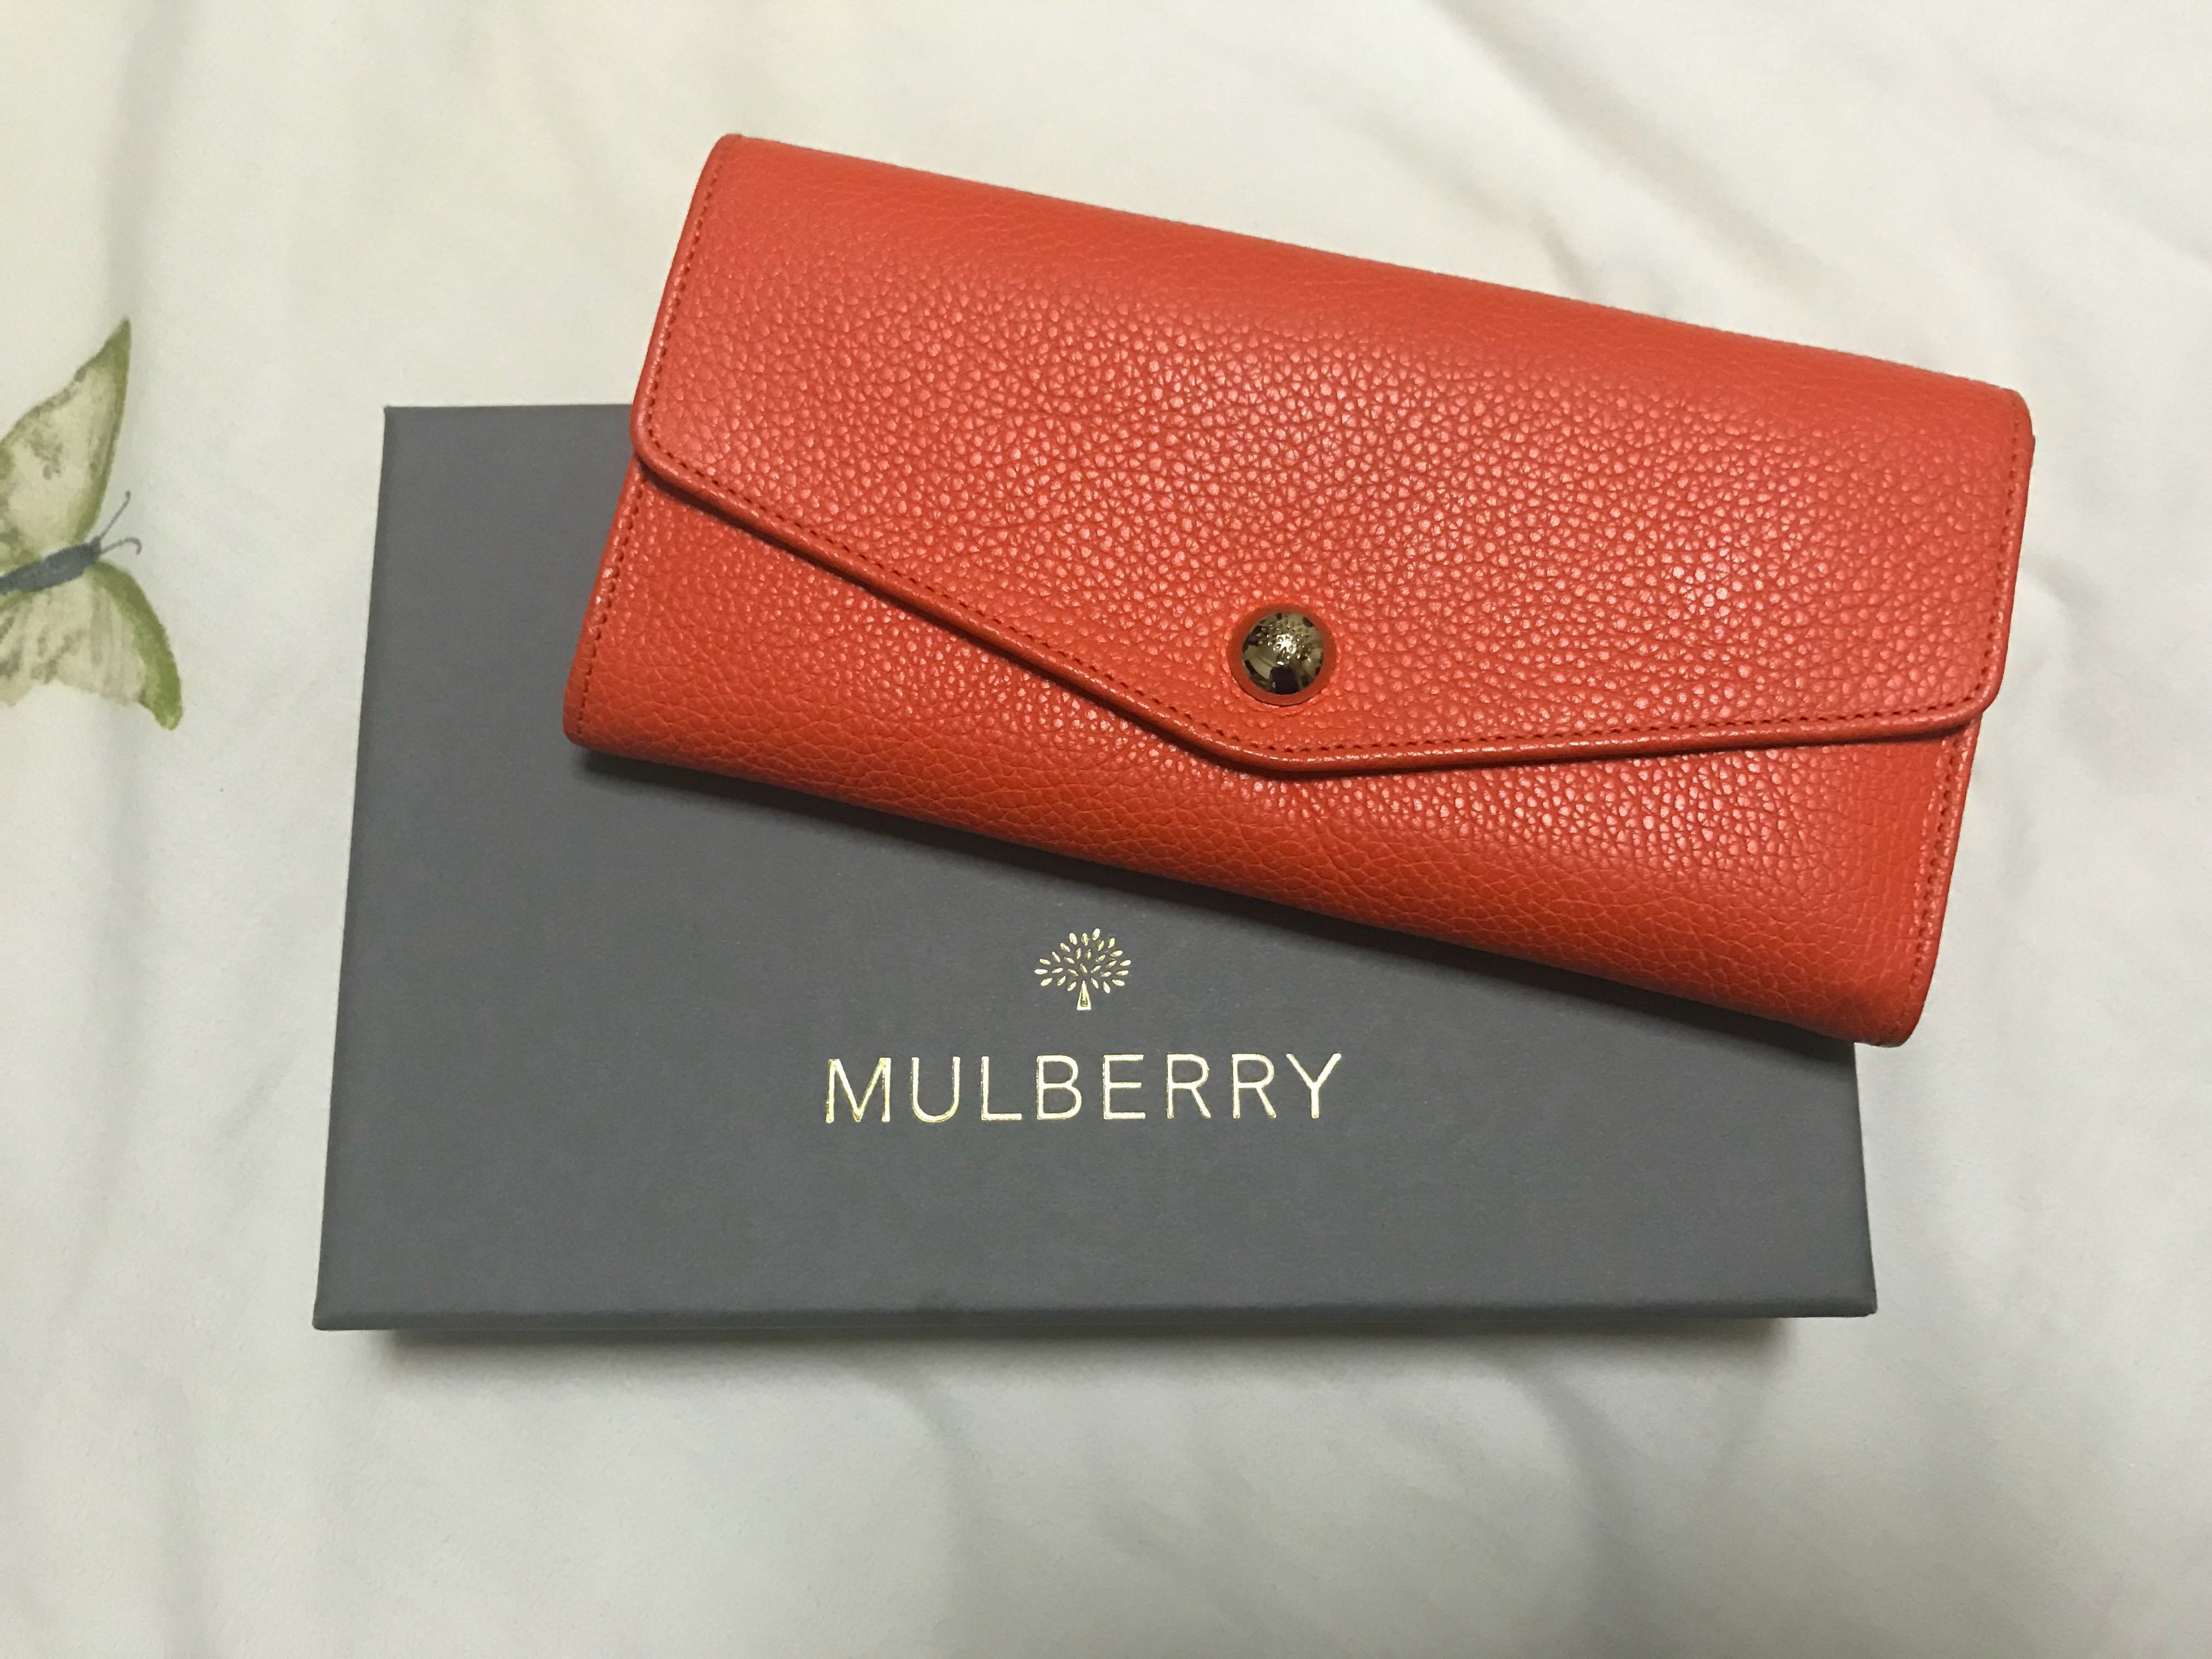 Mint Condition Mulberry Wallet, Women s Fashion, Bags   Wallets on Carousell 156321ec69